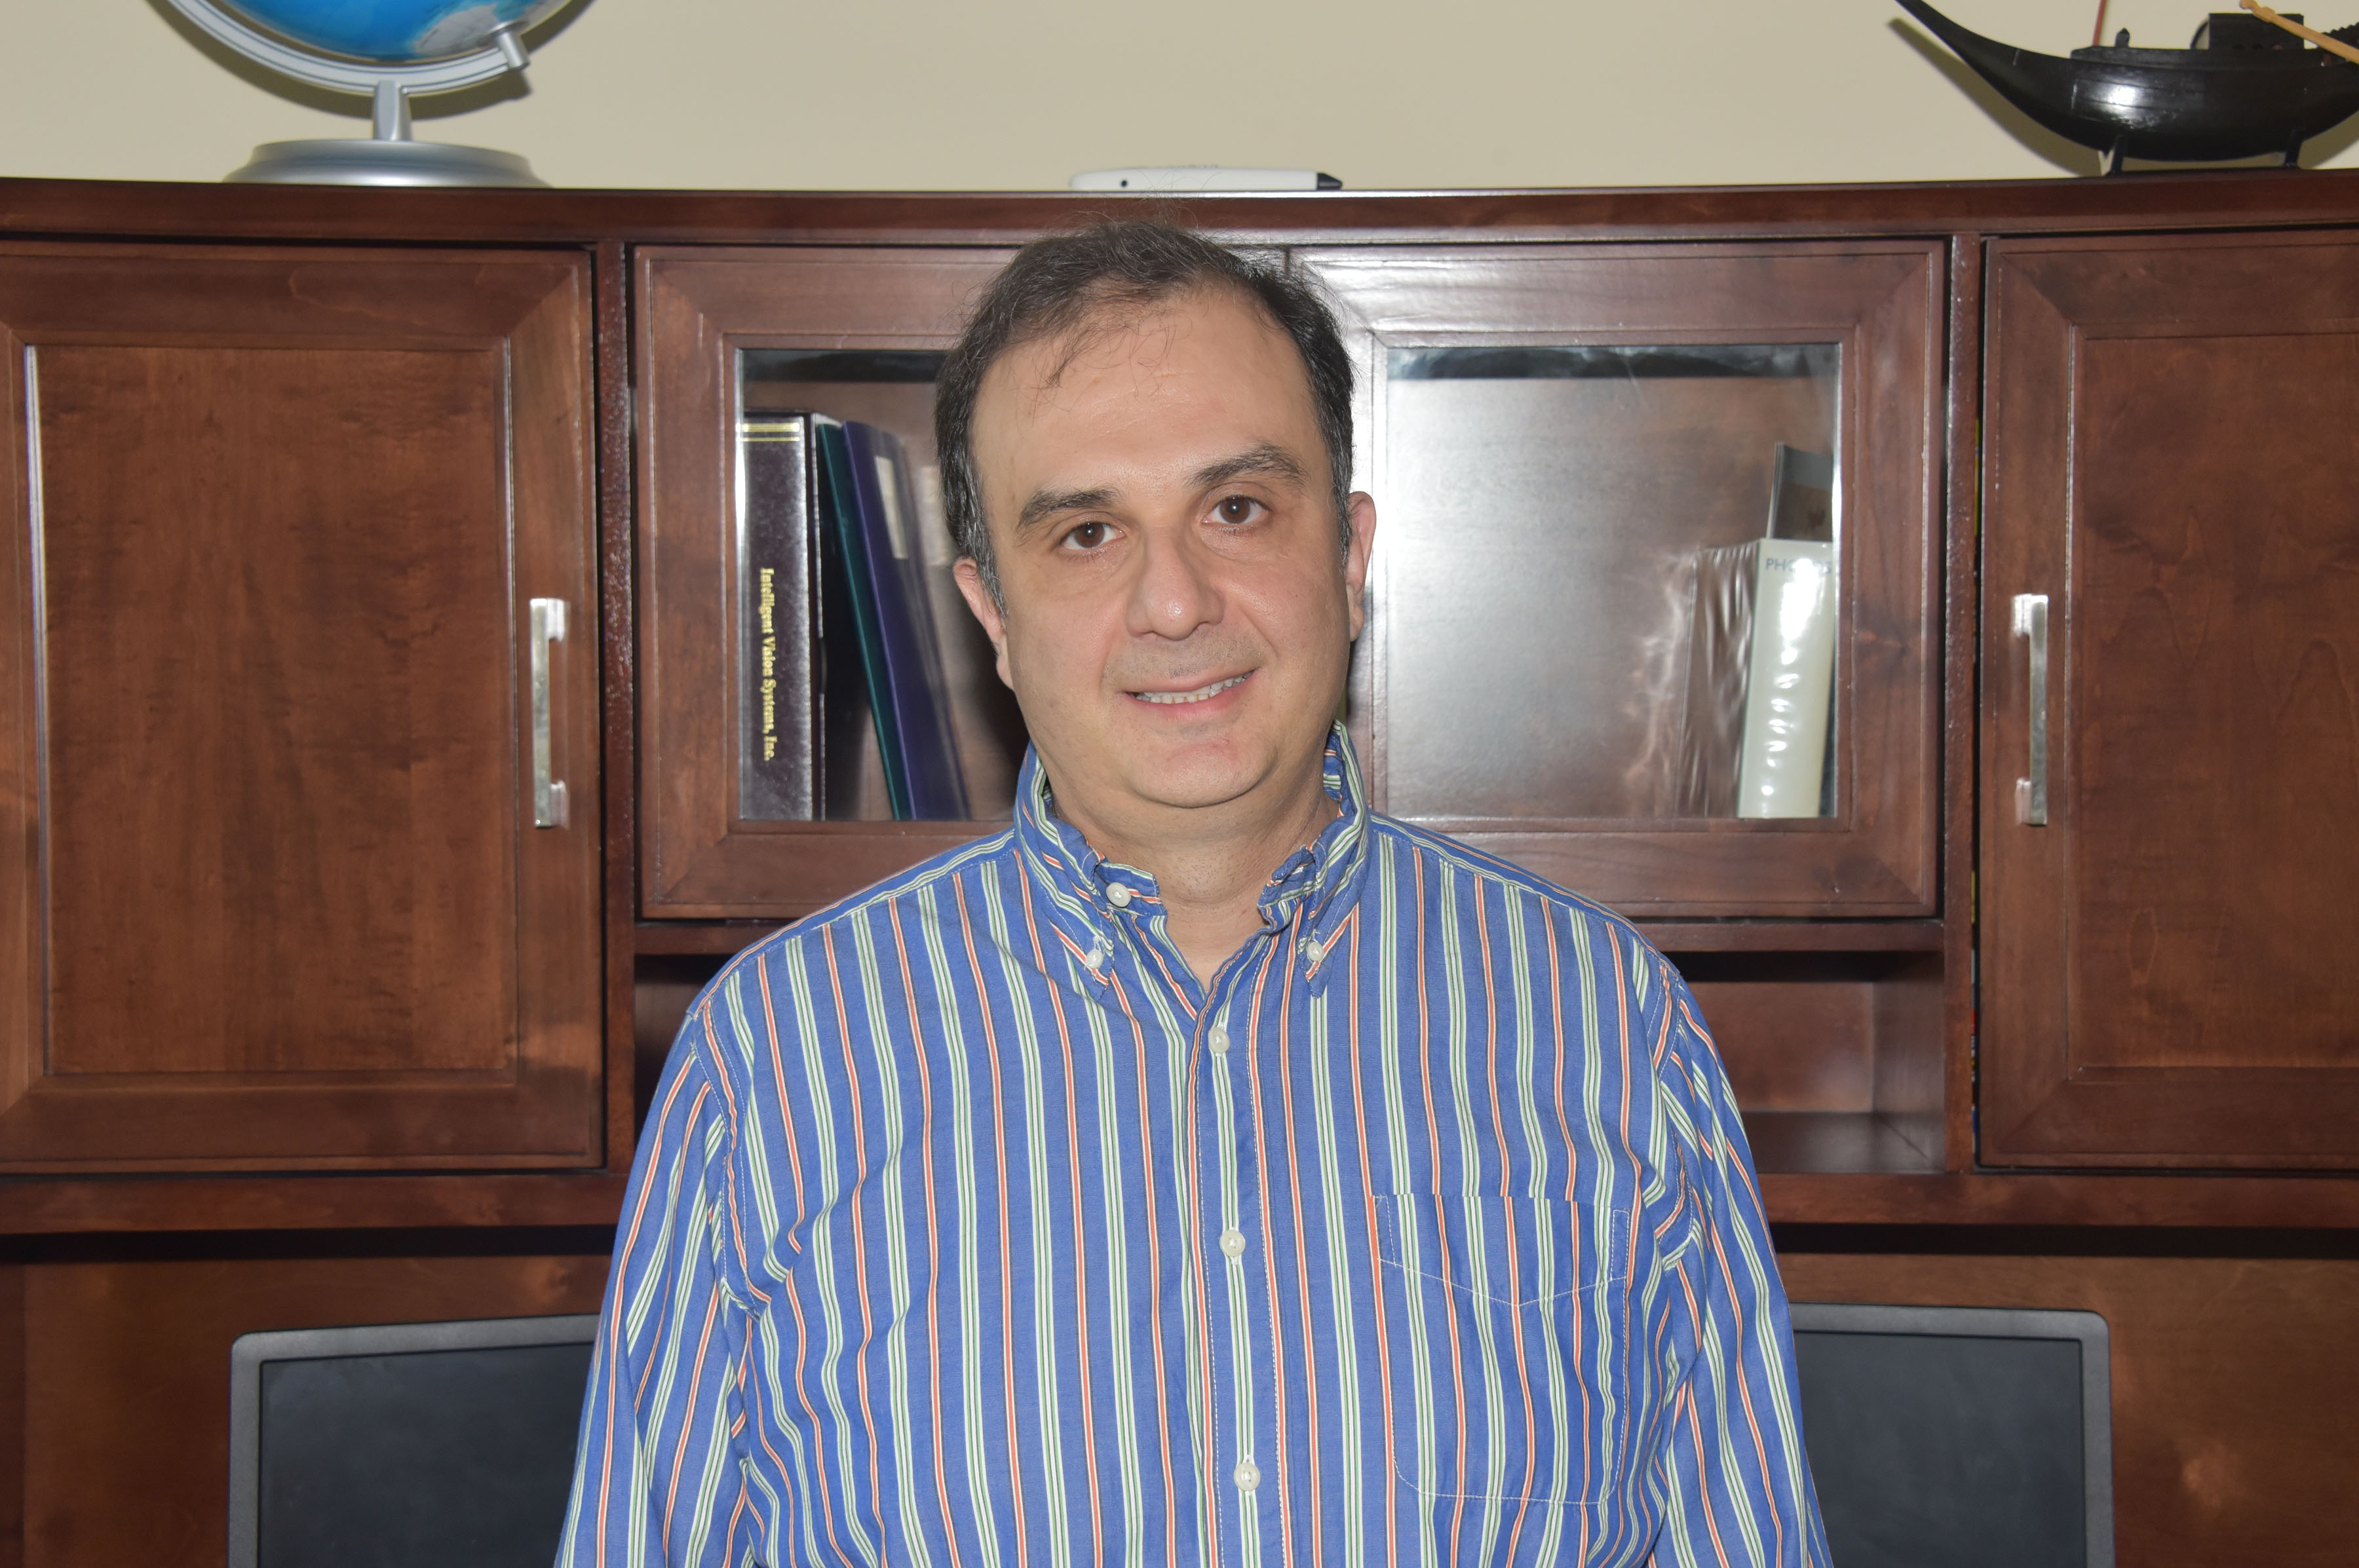 The Department of Defense Army Research Office has awarded Dr. Sokratis Makrogiannis, associate professor of mathematics, a three-year $435,000 grant in support of the development of automated techniques to enable the observation and quantification of cell-cycle progression, cell migration and the growth control of live cells.